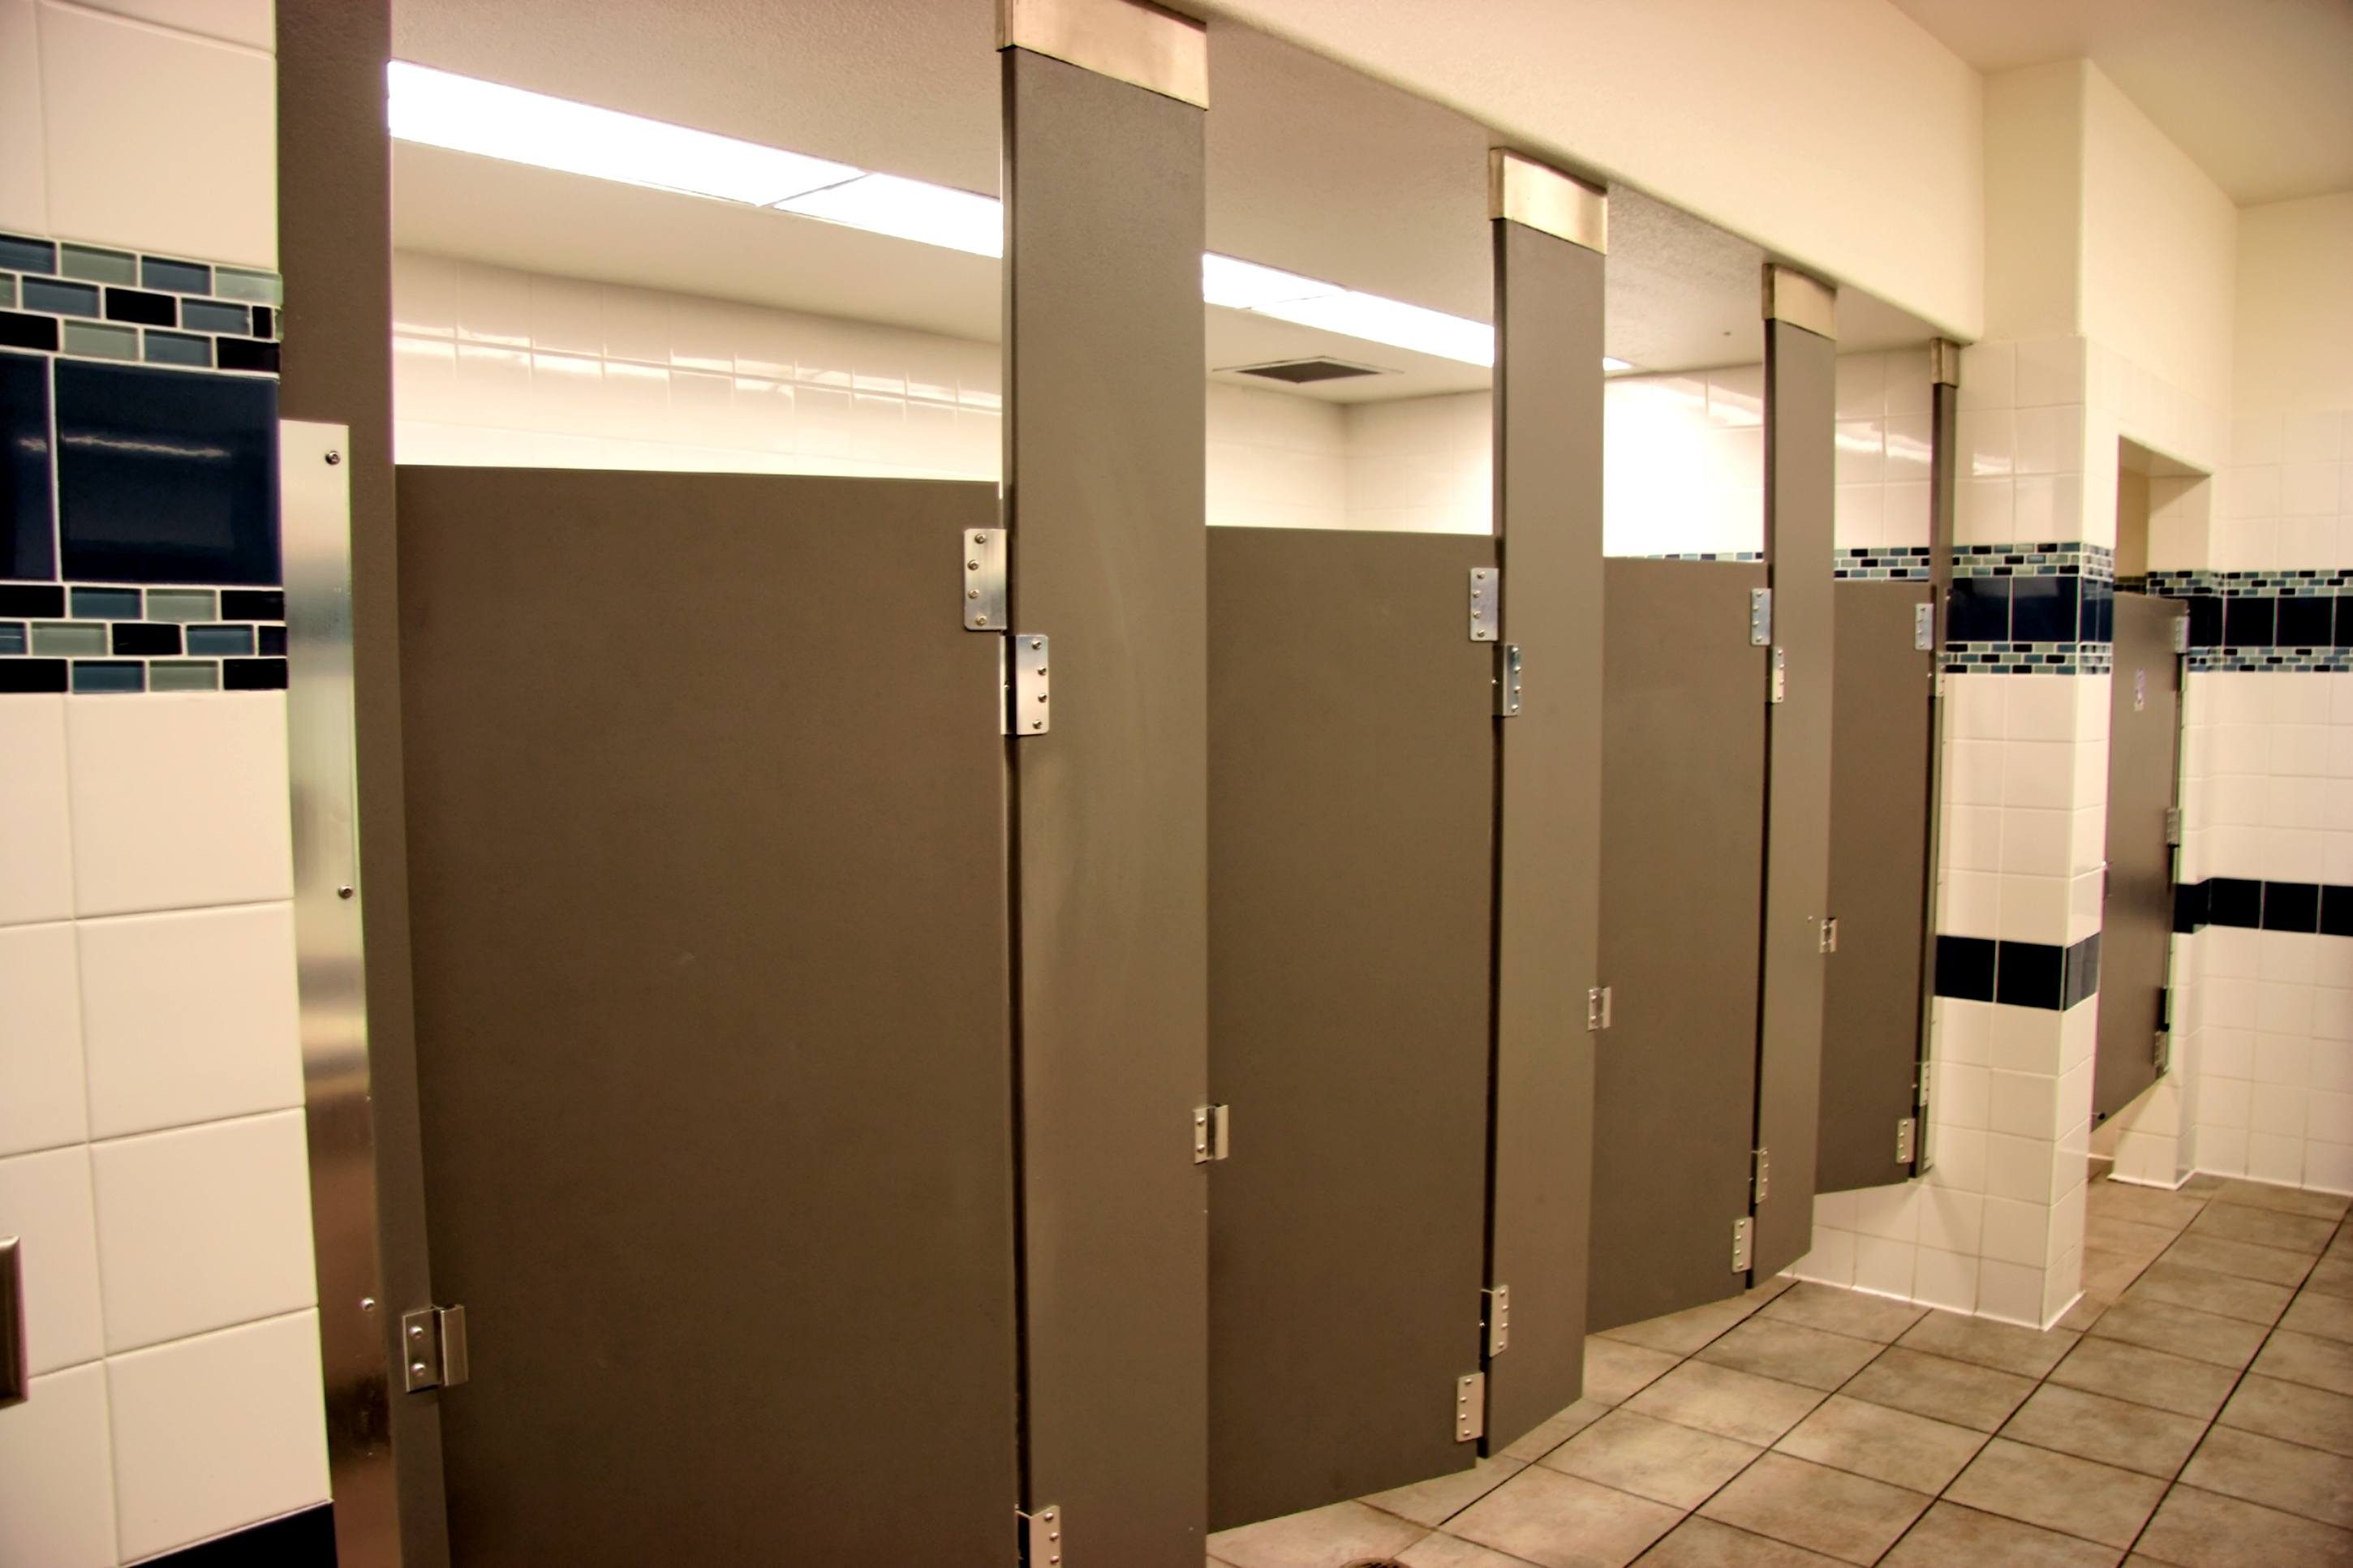 Empty Public Bathroom Stalls